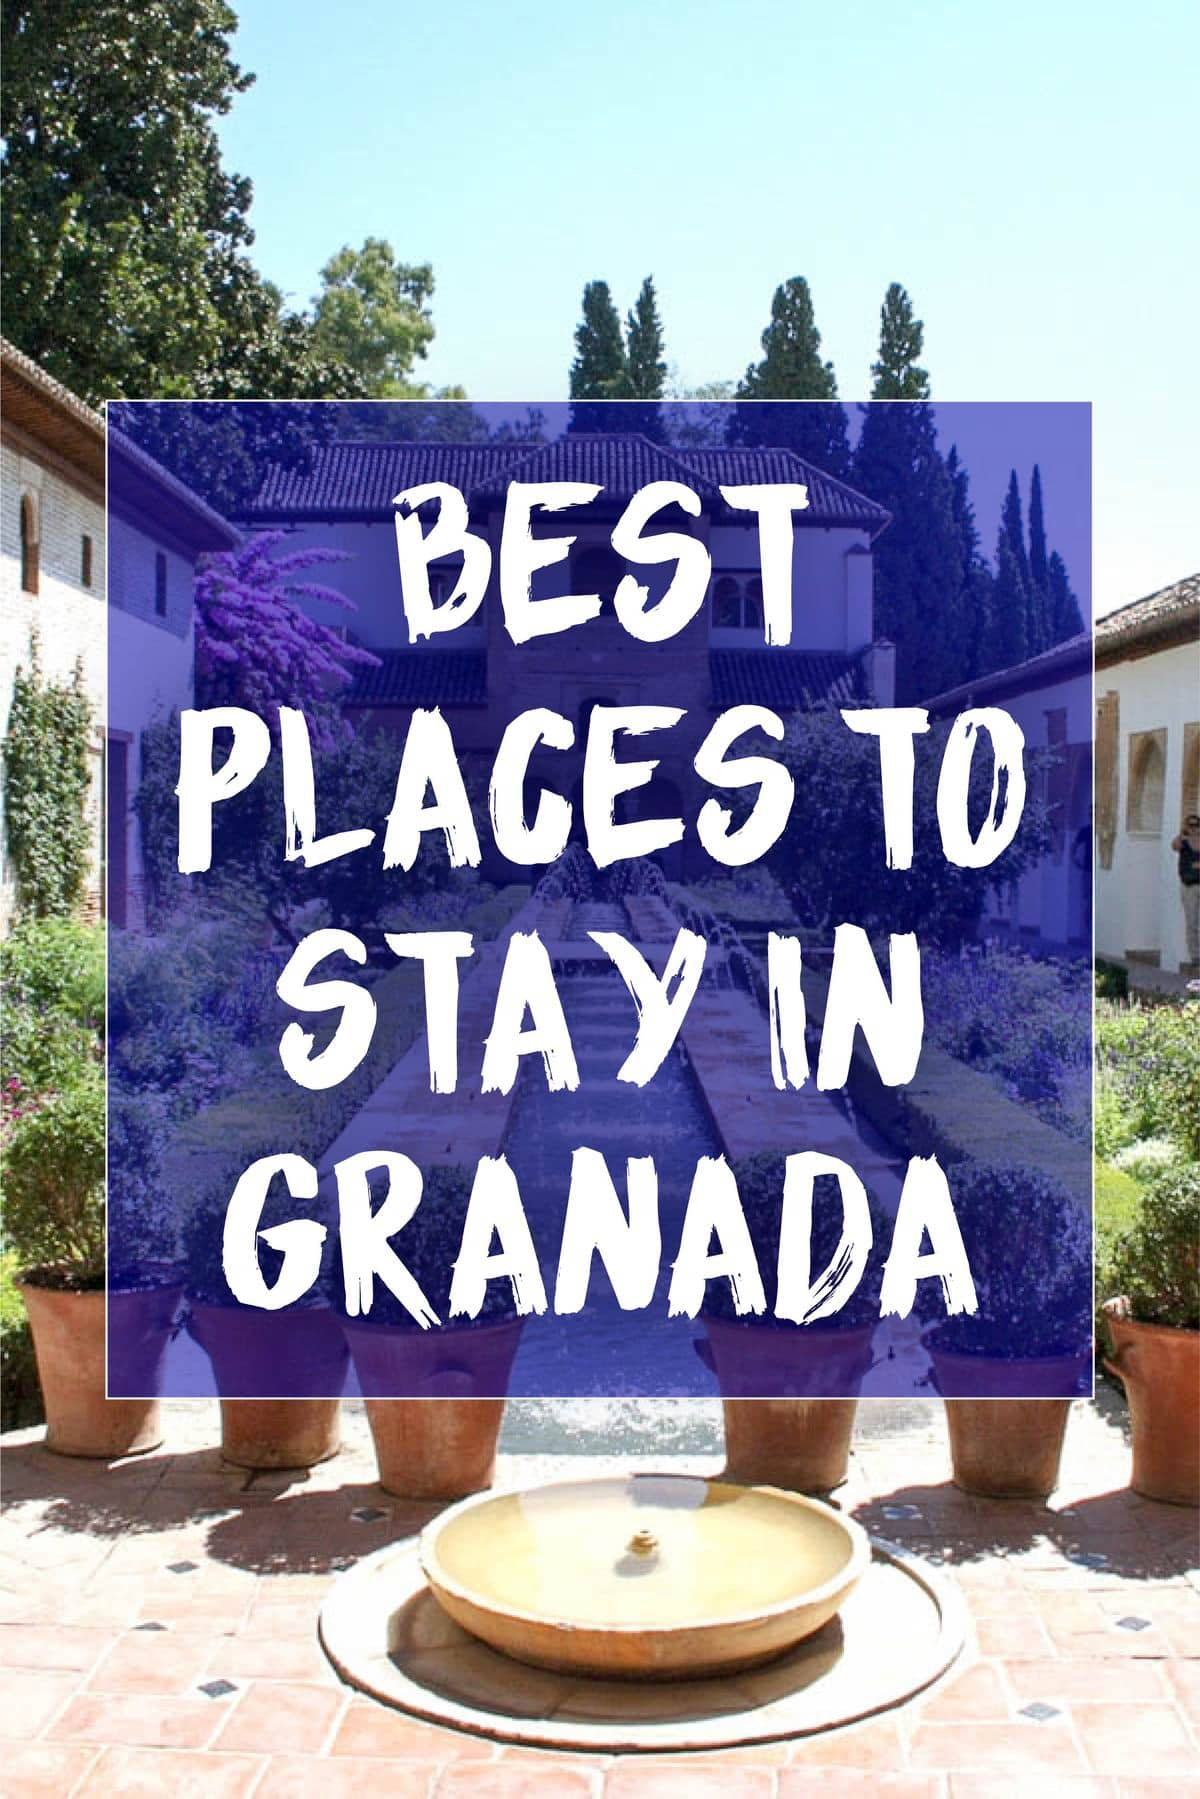 Accommodation is a key part of any trip to a new city! Make sure you find the perfect hotel for you with our guide on where to stay in Granada.